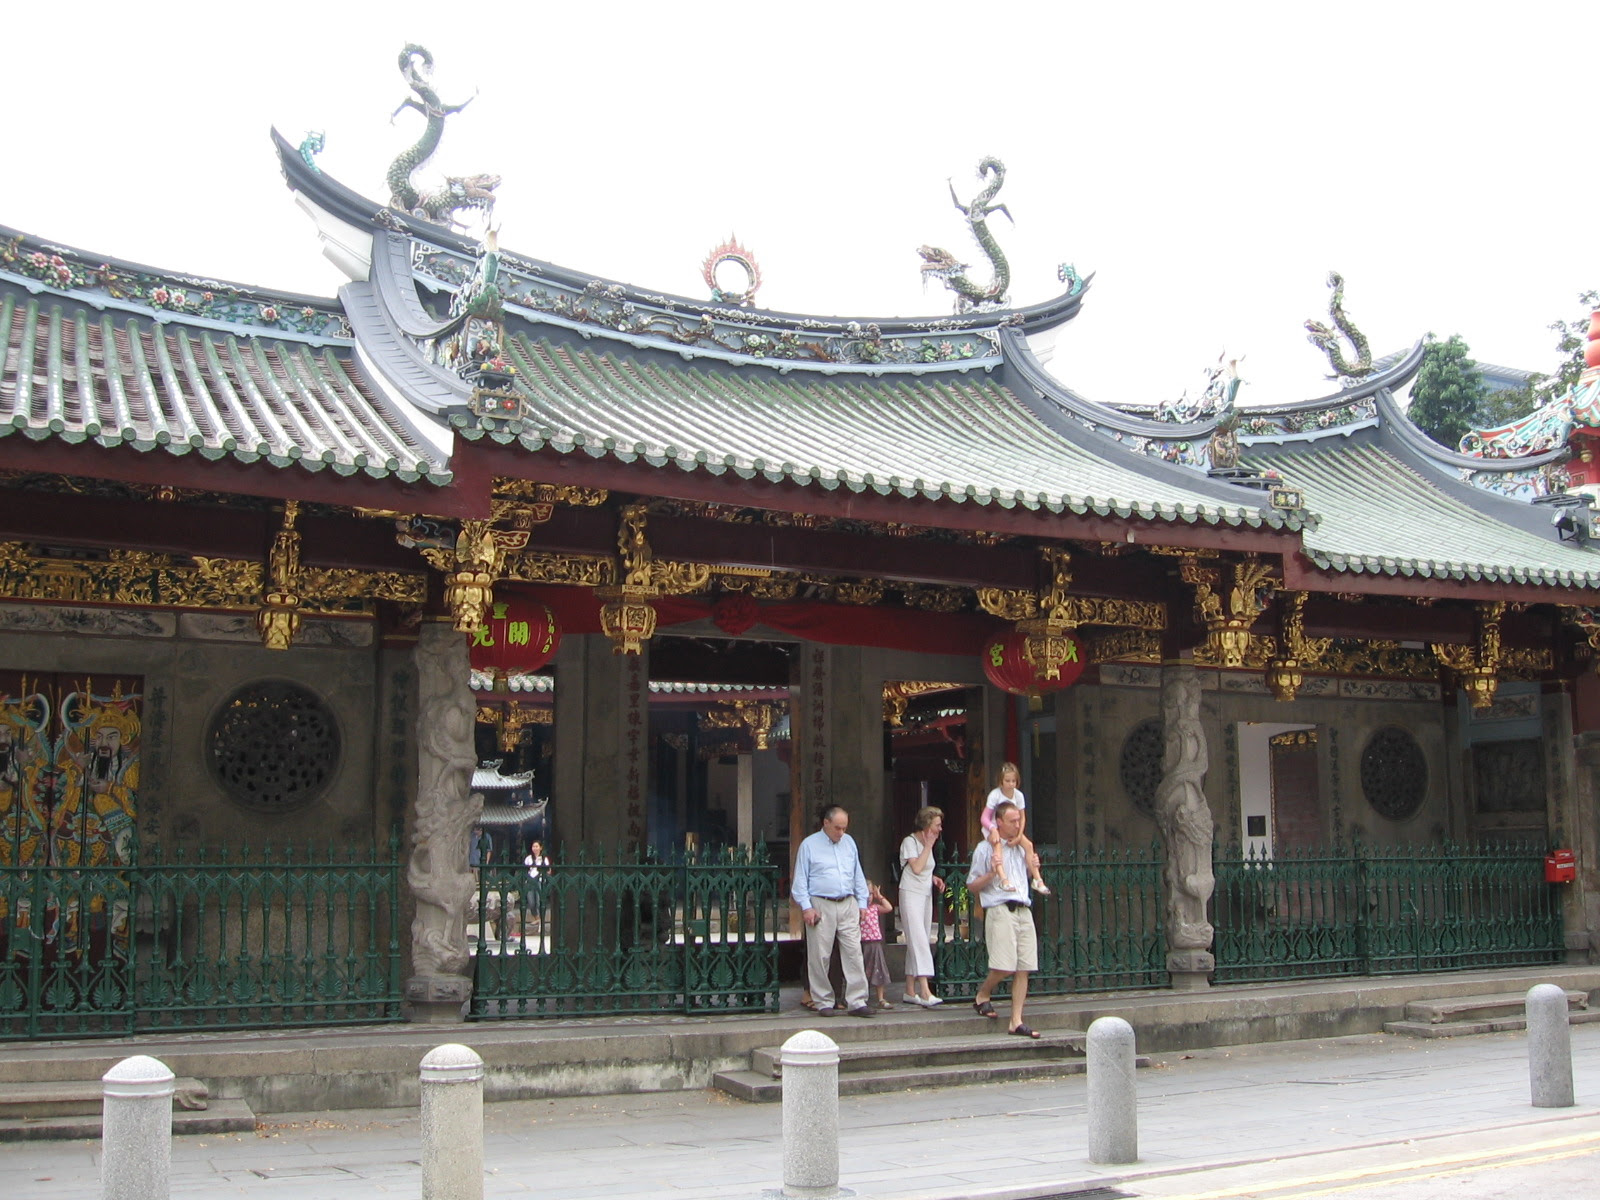 Thian Hock Kheng Temple Singapore Location Attractions Map,Location Attractions Map of Thian Hock Kheng Temple Singapore,Thian Hock Kheng Temple Singapore accommodation destinations hotels map reviews photos pictures